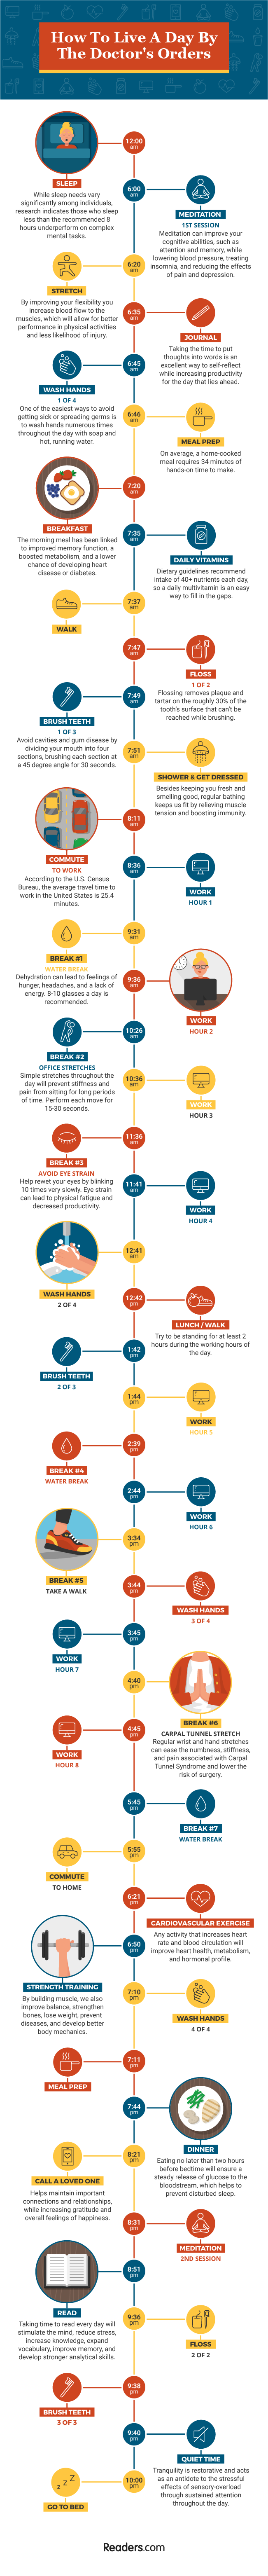 How to Live a Day by the Doctor's Orders #Infographic